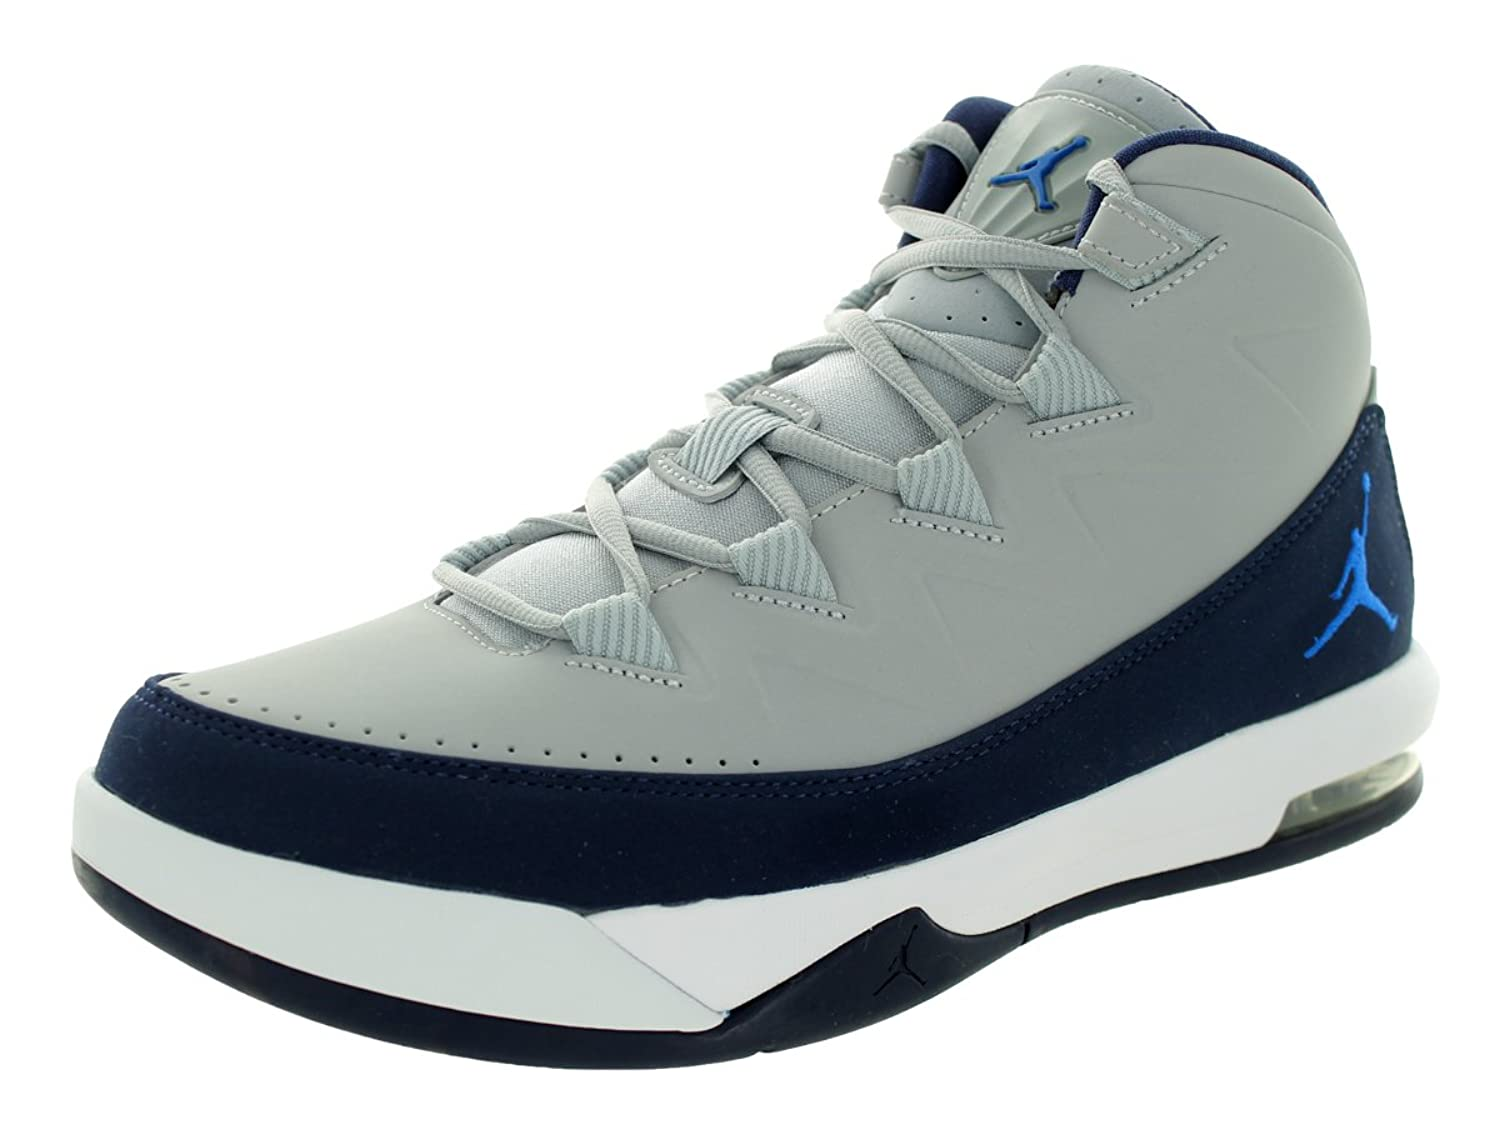 de733b5be7e8 30%OFF Nike Jordan Men s Jordan Air Deluxe Basketball Shoe ...